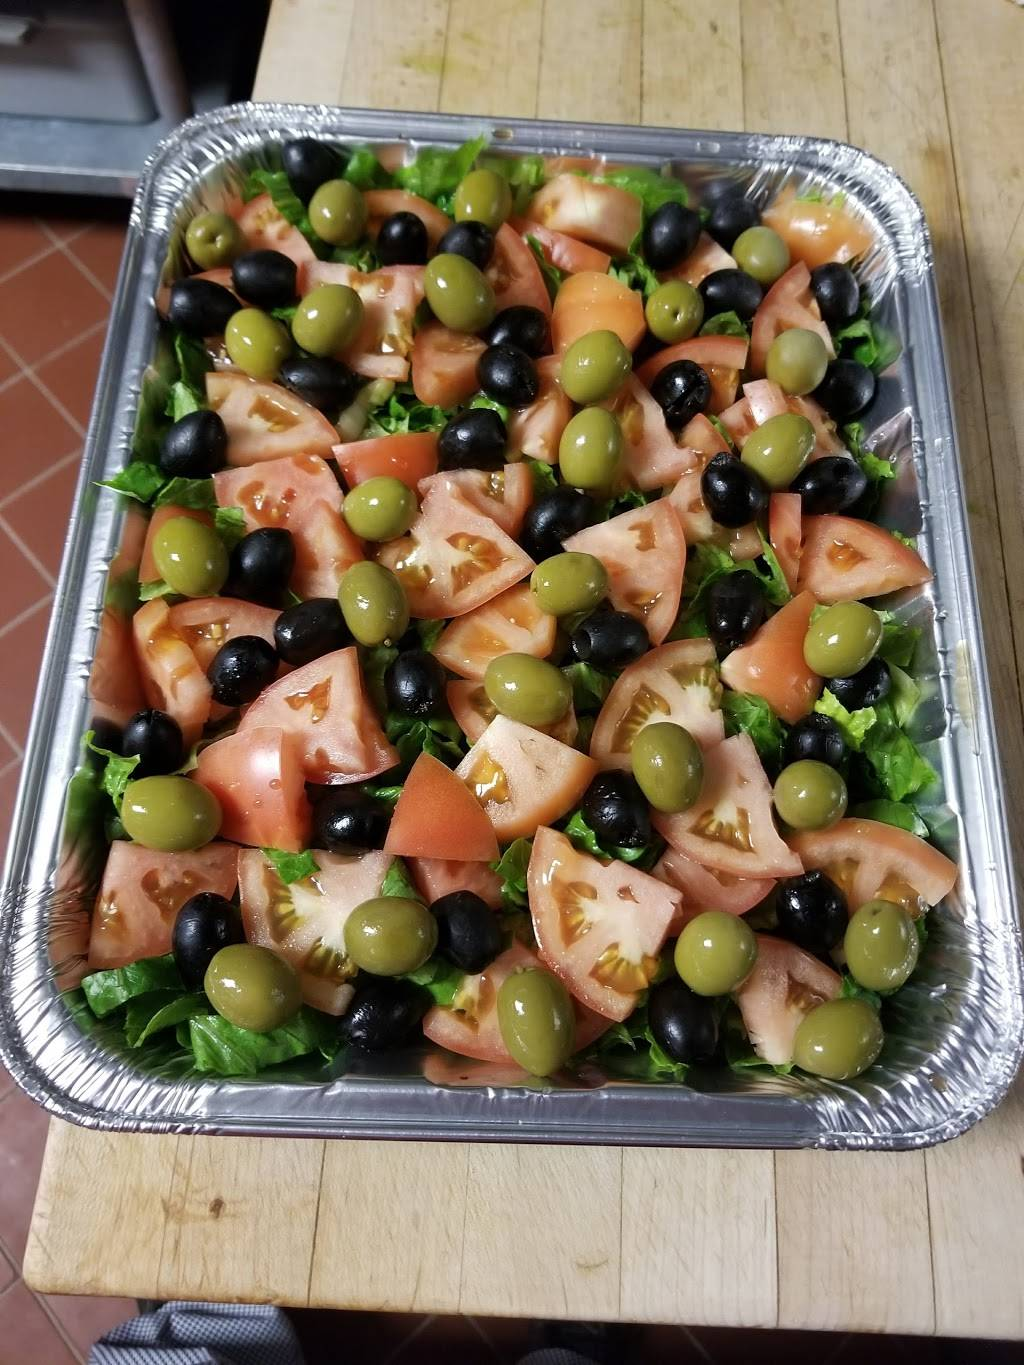 Tonys Originals Pizzeria   meal delivery   11 Corson Ave, Staten Island, NY 10301, USA   9144255850 OR +1 914-425-5850